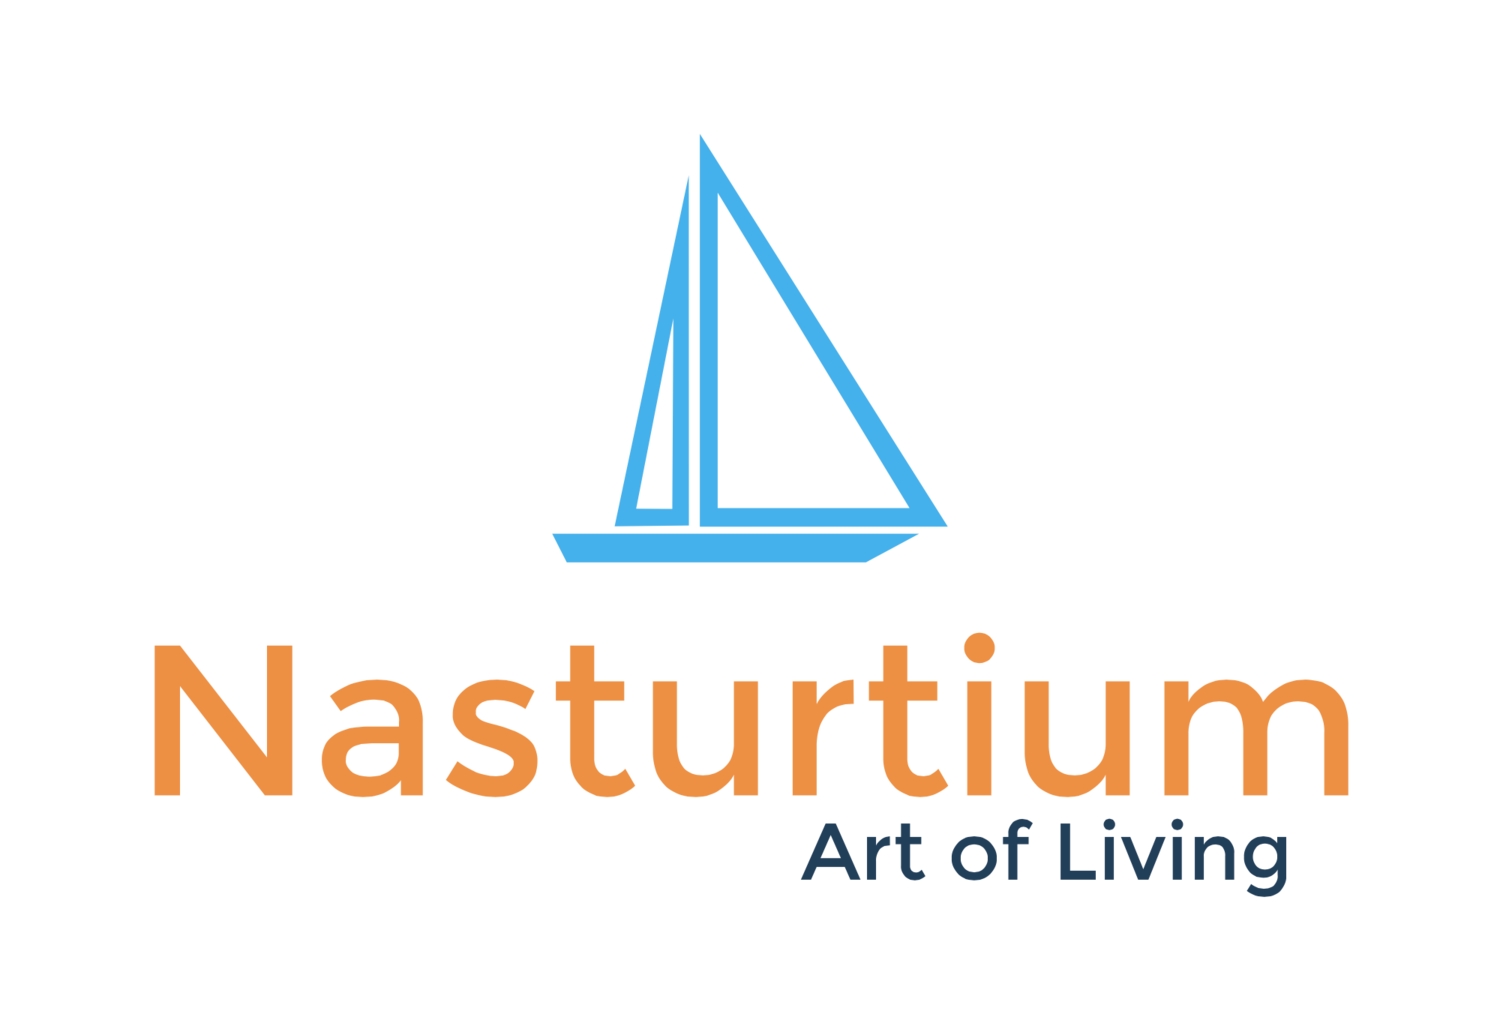 Nasturtium Art of Living